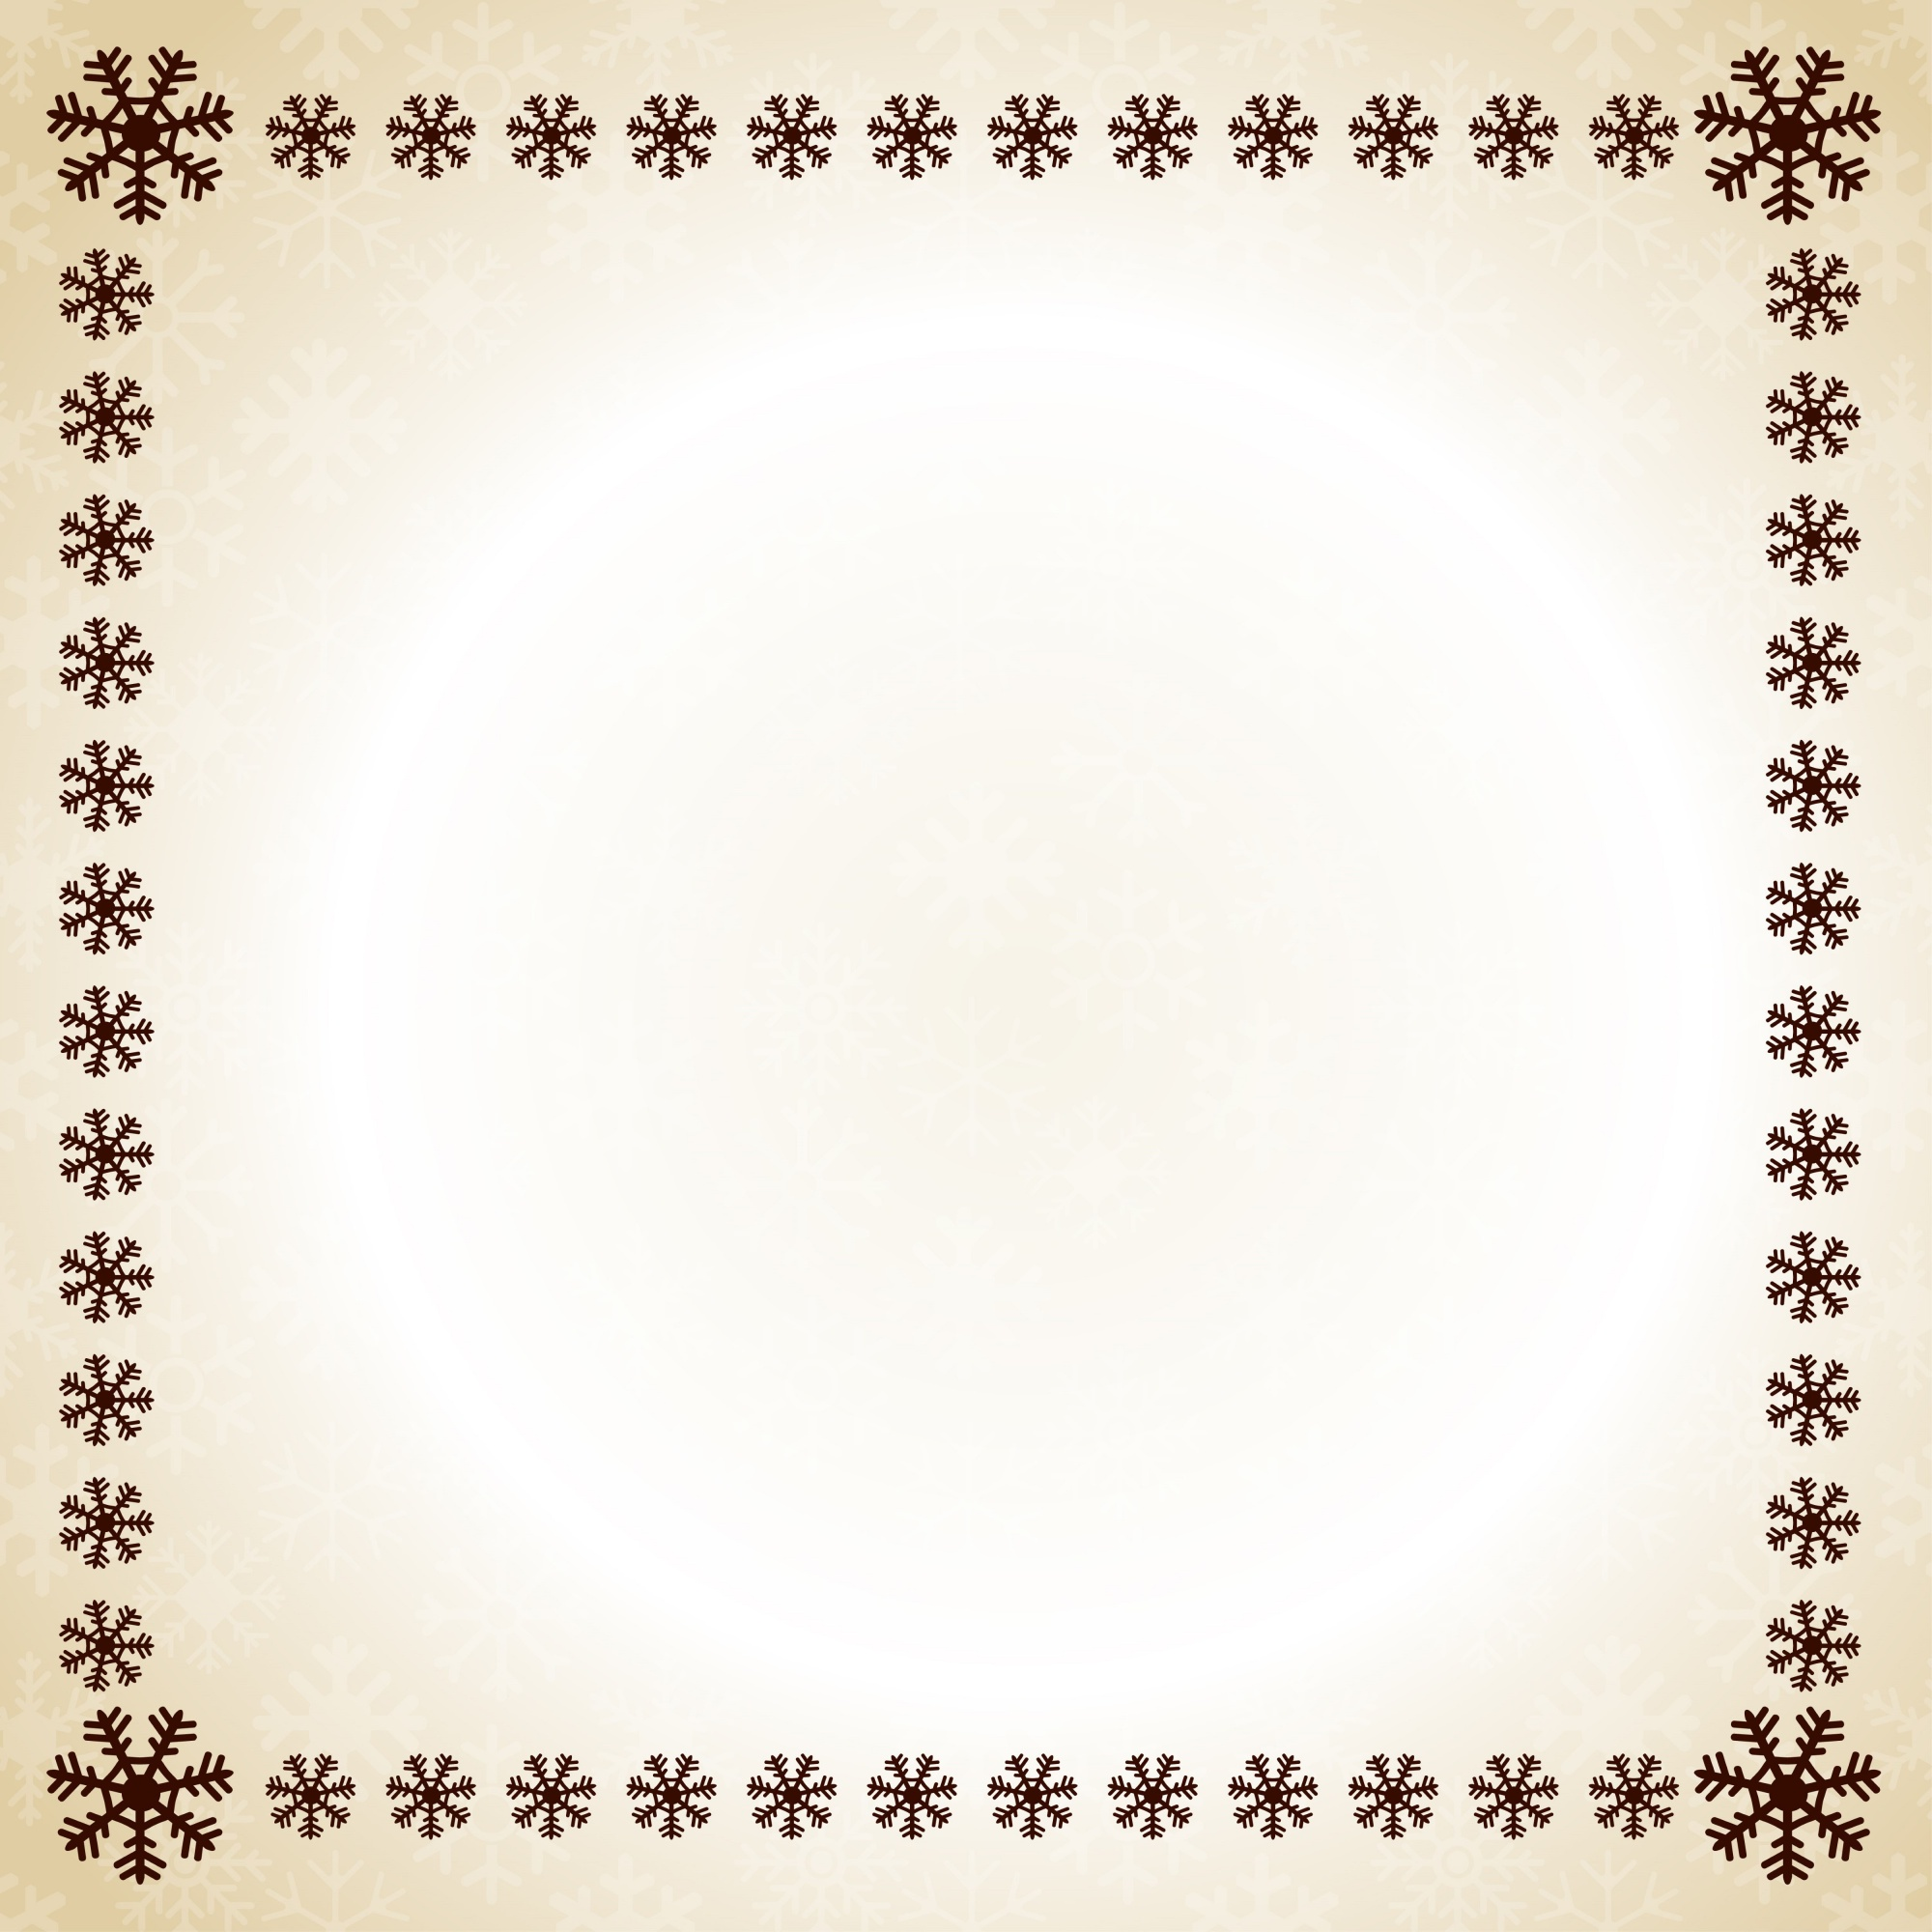 Christmas frame snow flakes